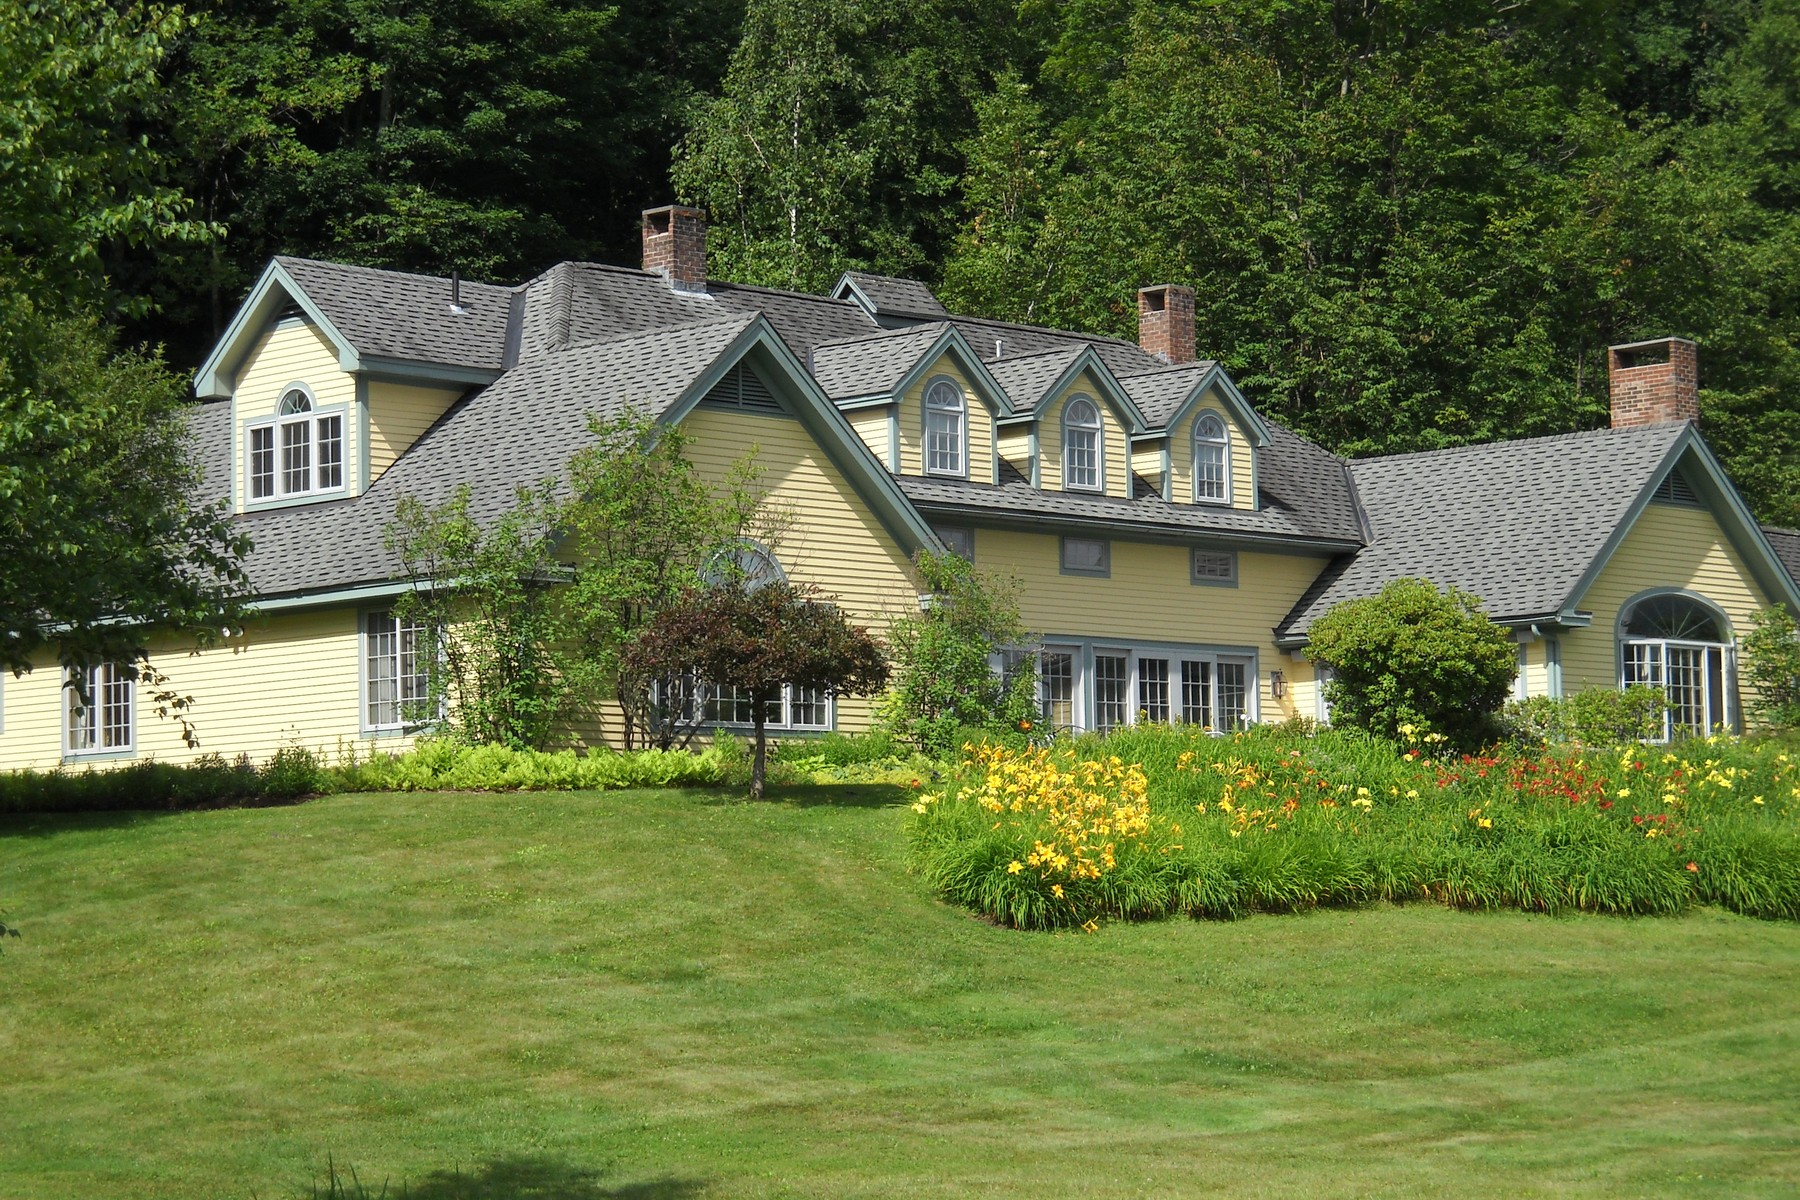 Single Family Home for Sale at 208 Lower Hollow Road, Dorset 208 Lower Hollow Rd Dorset, Vermont 05251 United States